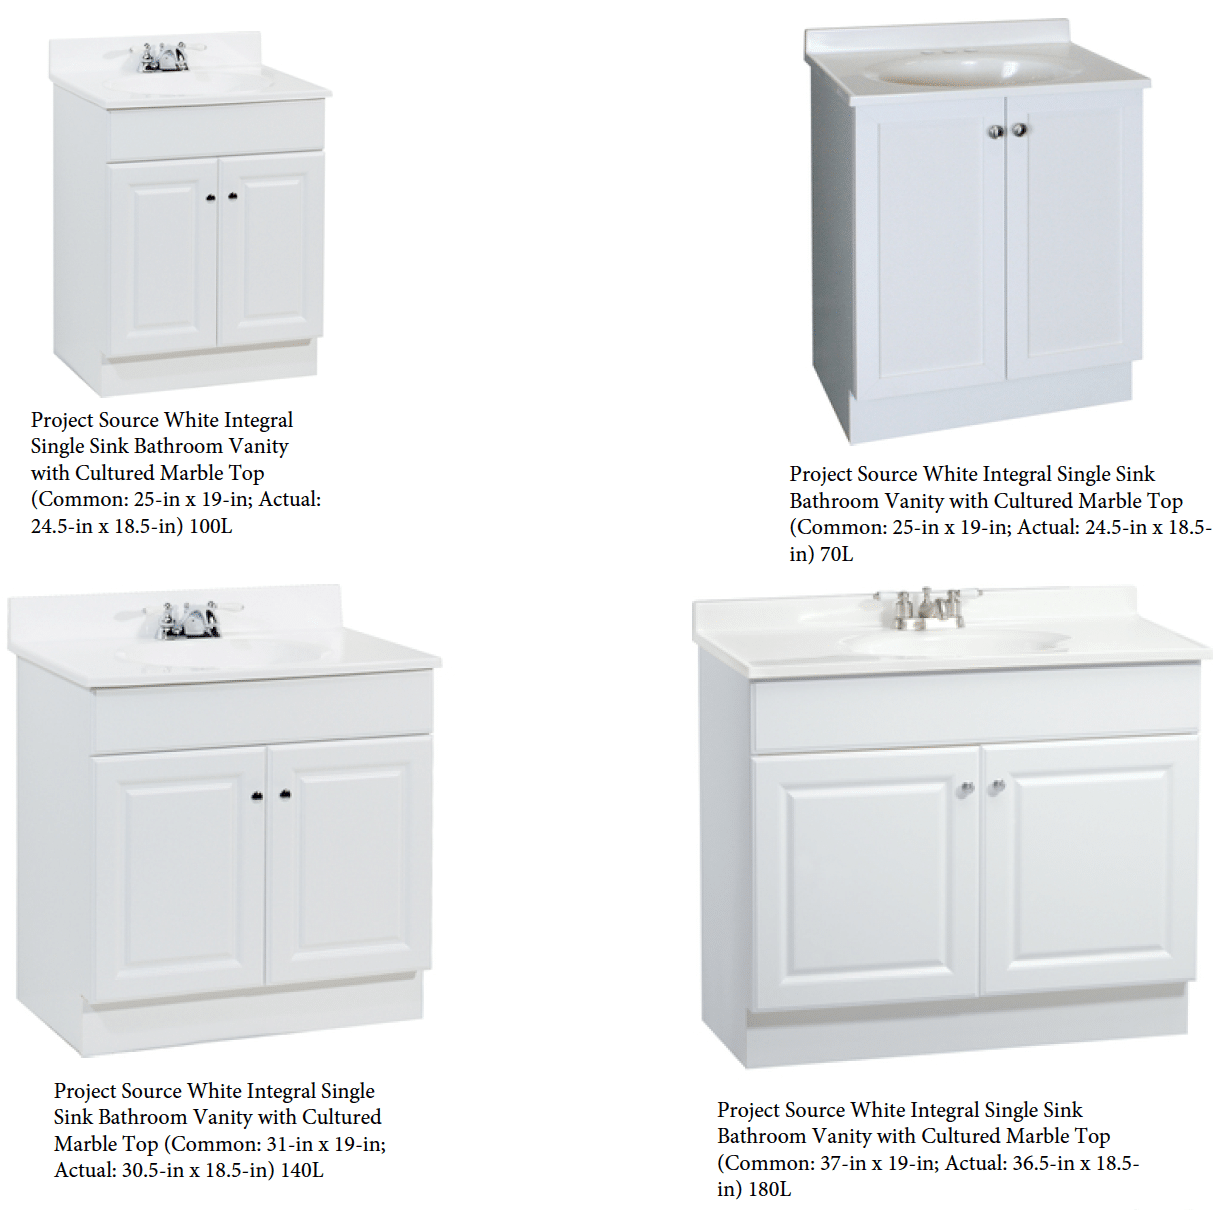 Modern White Vanity Options For Bathroom Remodel Projects